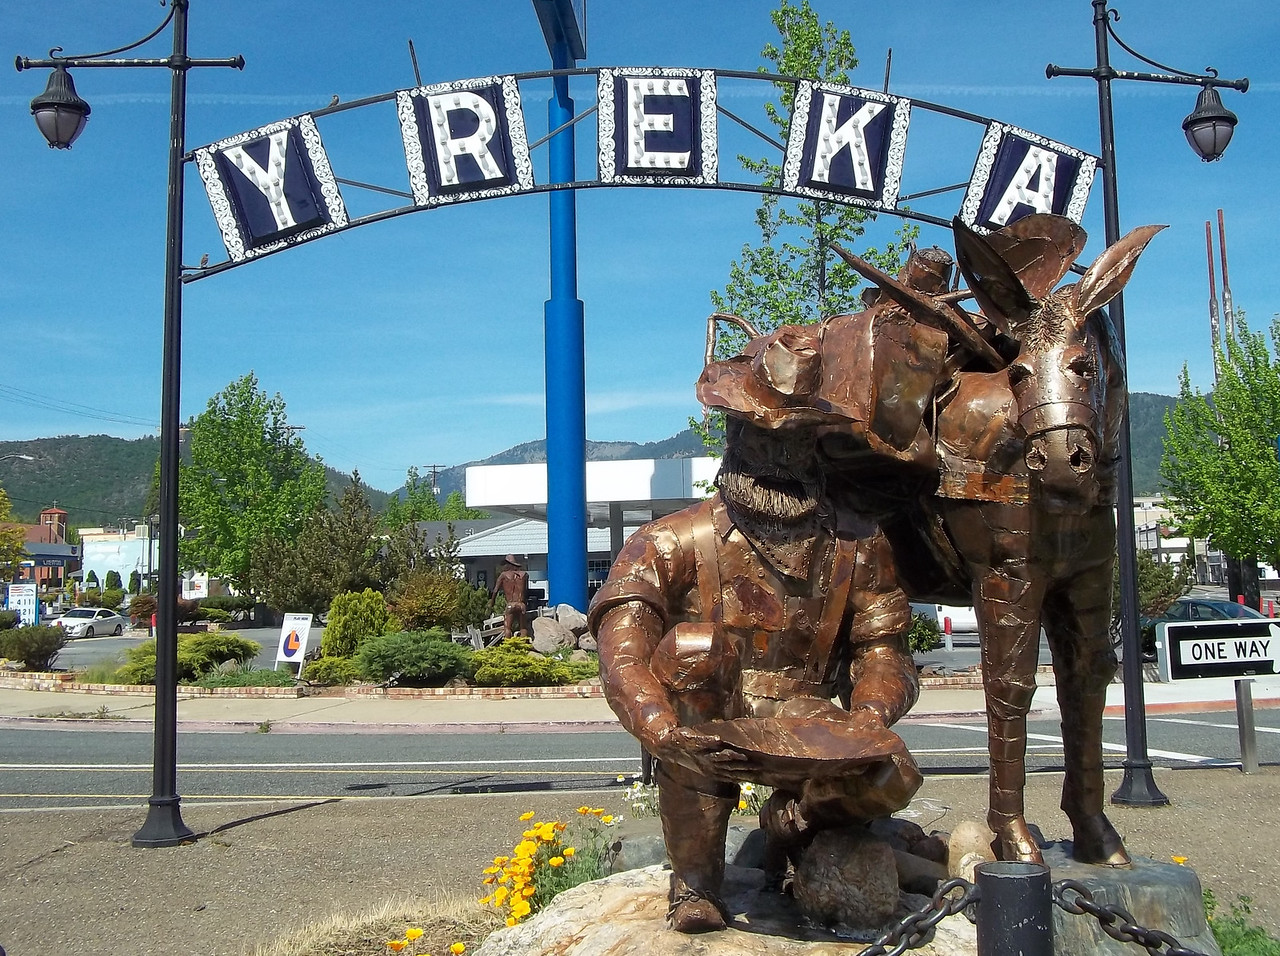 Hooray--it's Reno roadtrip 2013!  On the way there, Dave and I spent our first night (Saturday, May 11) at the Super 8 Motel in Yreka, CA.  This statue of a miner and his donkey are in central Yreka, which was a boom town during California's gold rush.<br /> Note: My camera battery died here, so most of the pictures in Yreka were taken by me using Dave's camera.